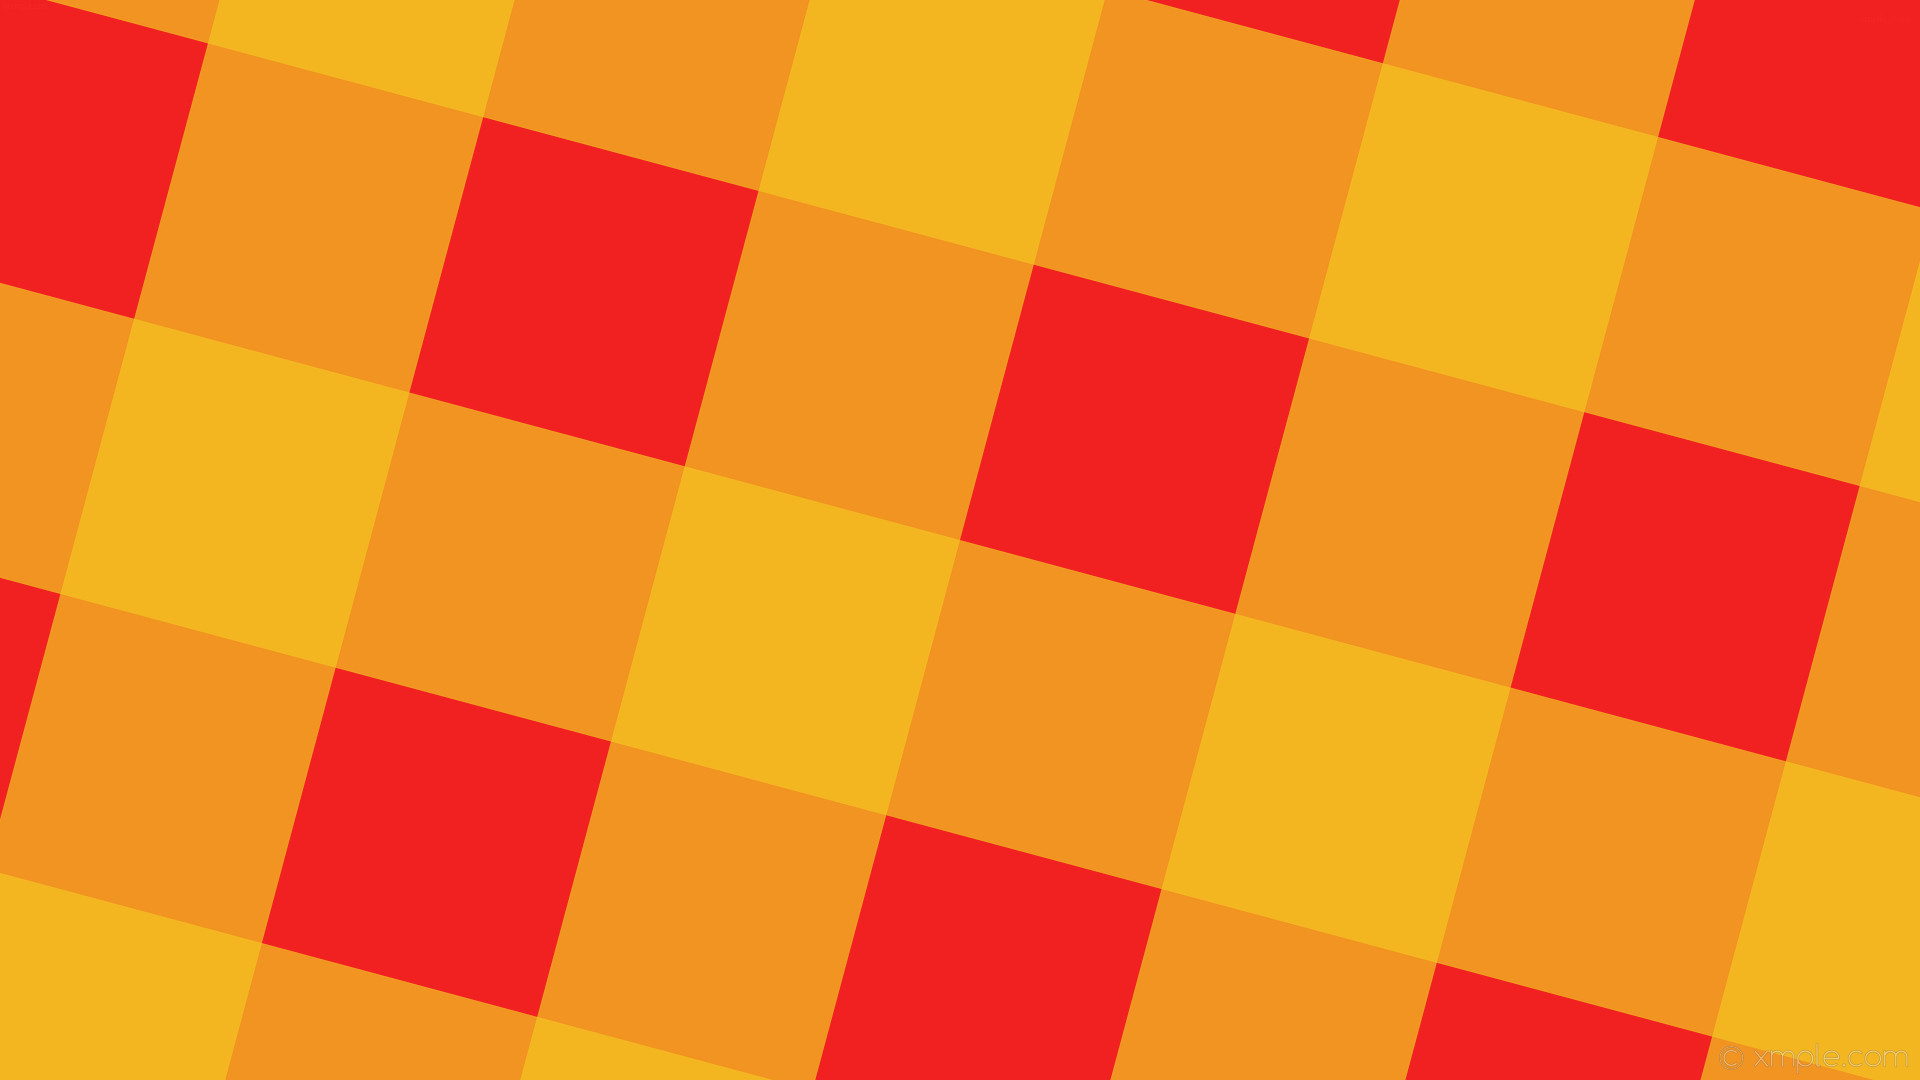 1920x1080 wallpaper striped checker gingham yellow red #f22121 #f2c421 255° 285px